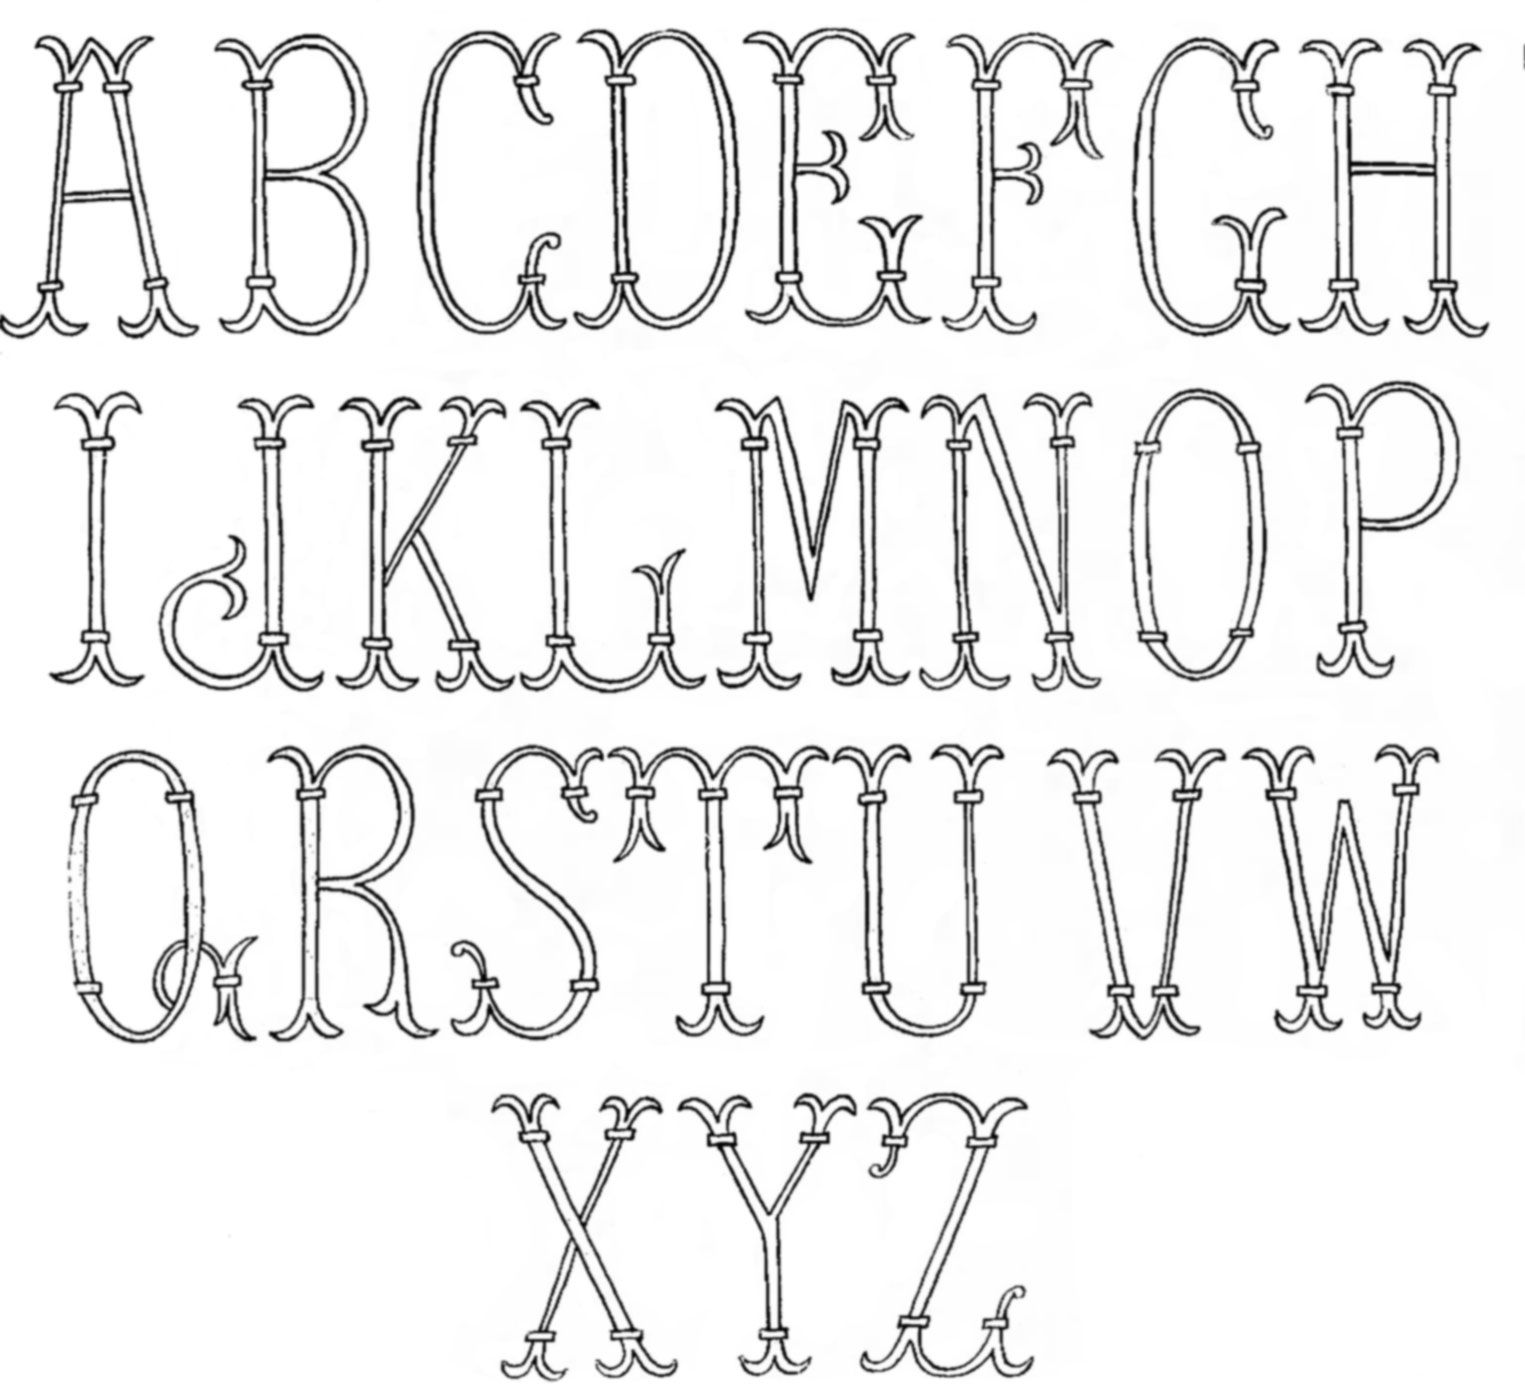 Monogram Patterns for Hand Embroidery: Letters E and F